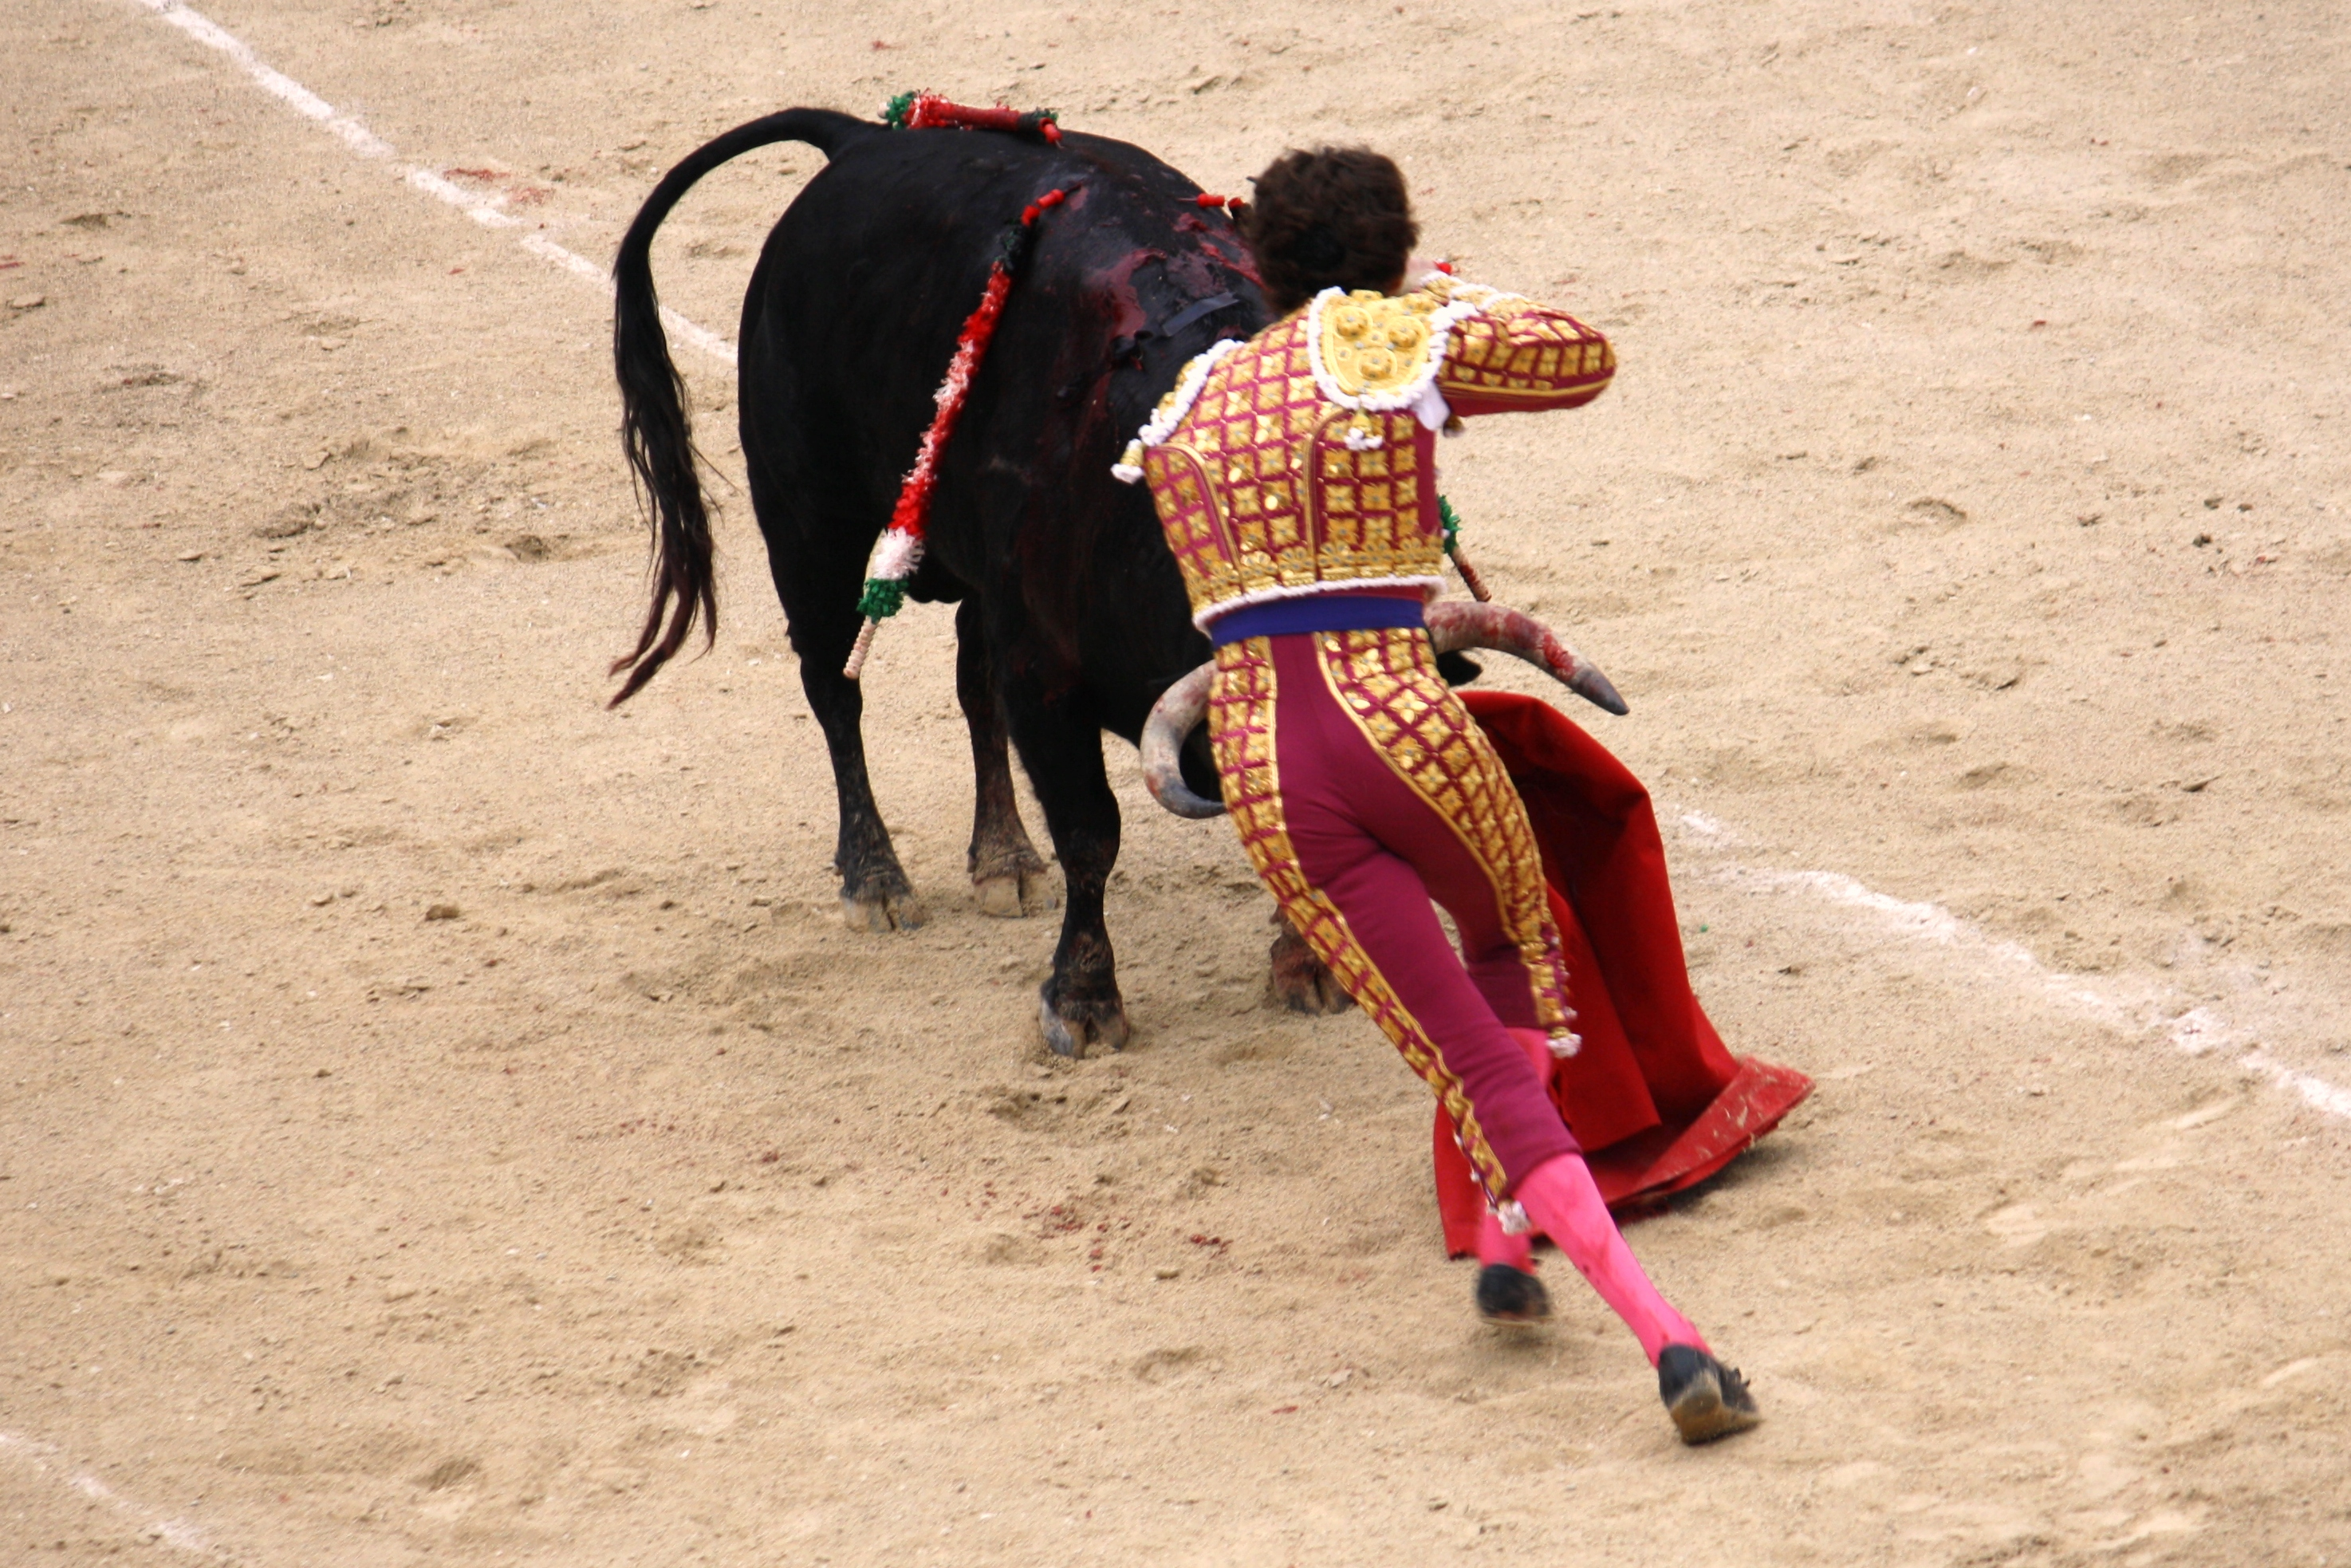 ethical questions about bullfighting Fans laid on a hero's welcome when jose tomas made a triumphal return to professional bullfighting in barcelona three years ago but society and notions of ethical treatment of animals have moved on it wasn't a question of animal suffering or animal abuse.